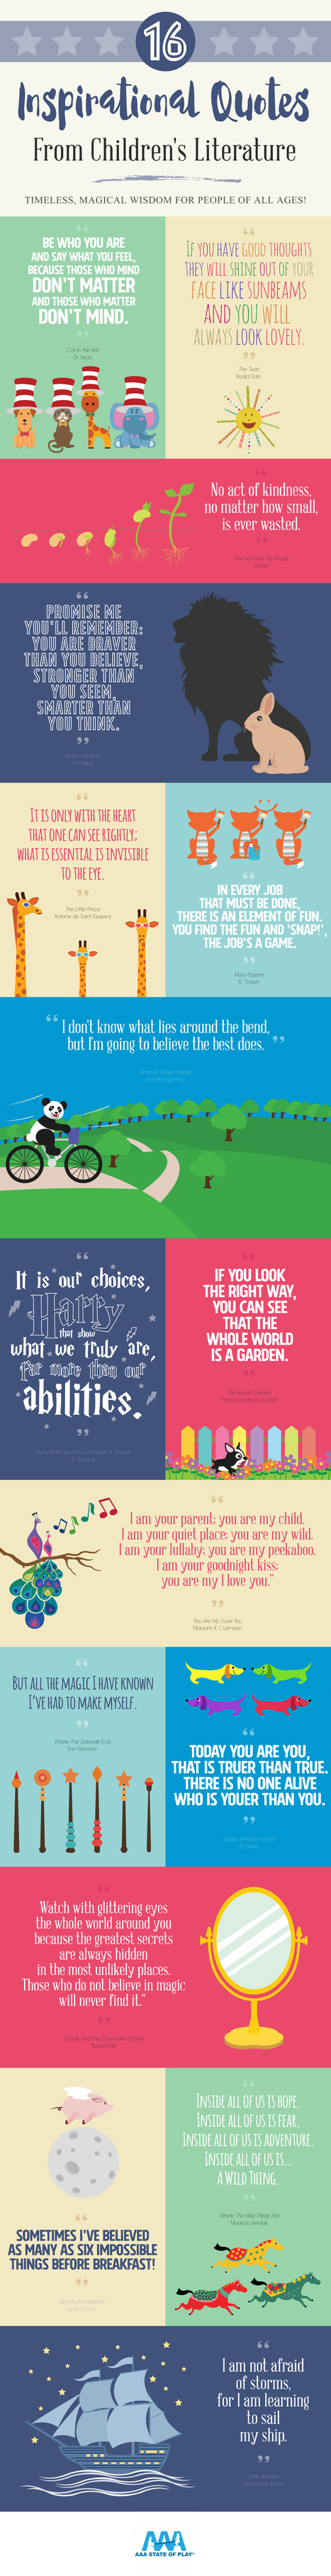 Inspirational Quotes from Children's Literature infographic - e-Learning Infographics | Create: 2.0 Tools... and ESL | Scoop.it